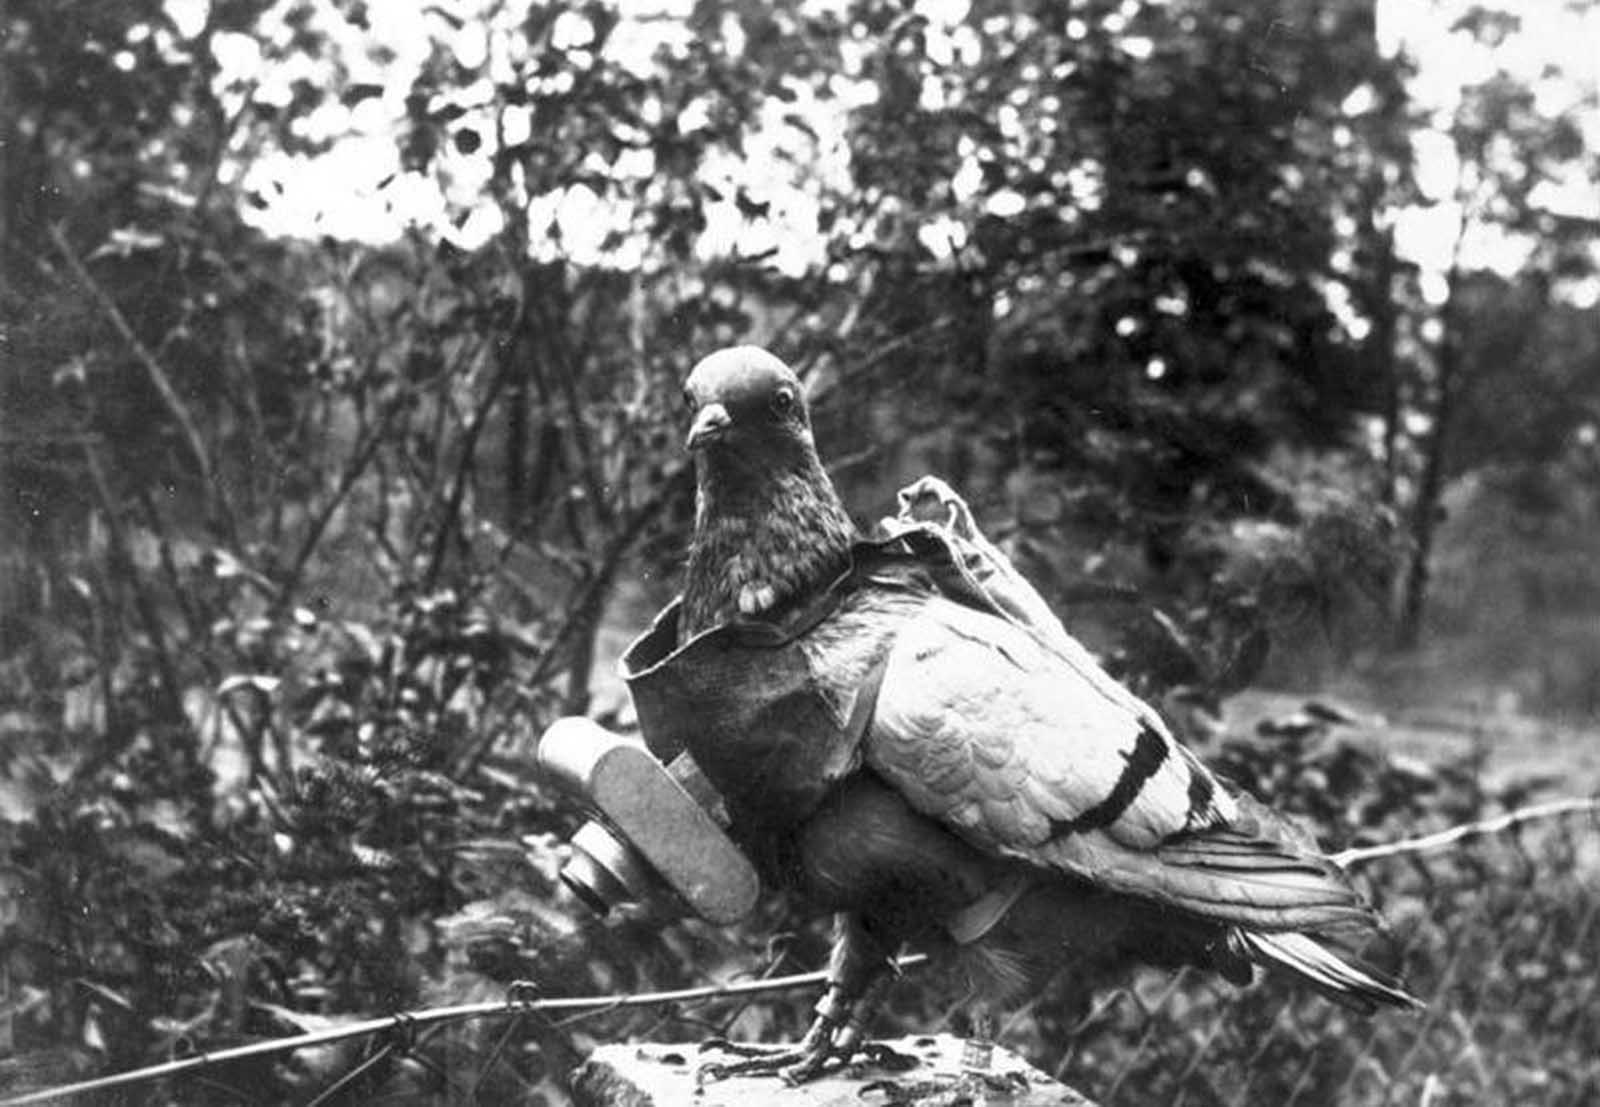 A pigeon with a small camera attached. The trained birds were used experimentally by German citizen Julius Neubronner, before and during the war years, capturing aerial images when a timer mechanism clicked the shutter.